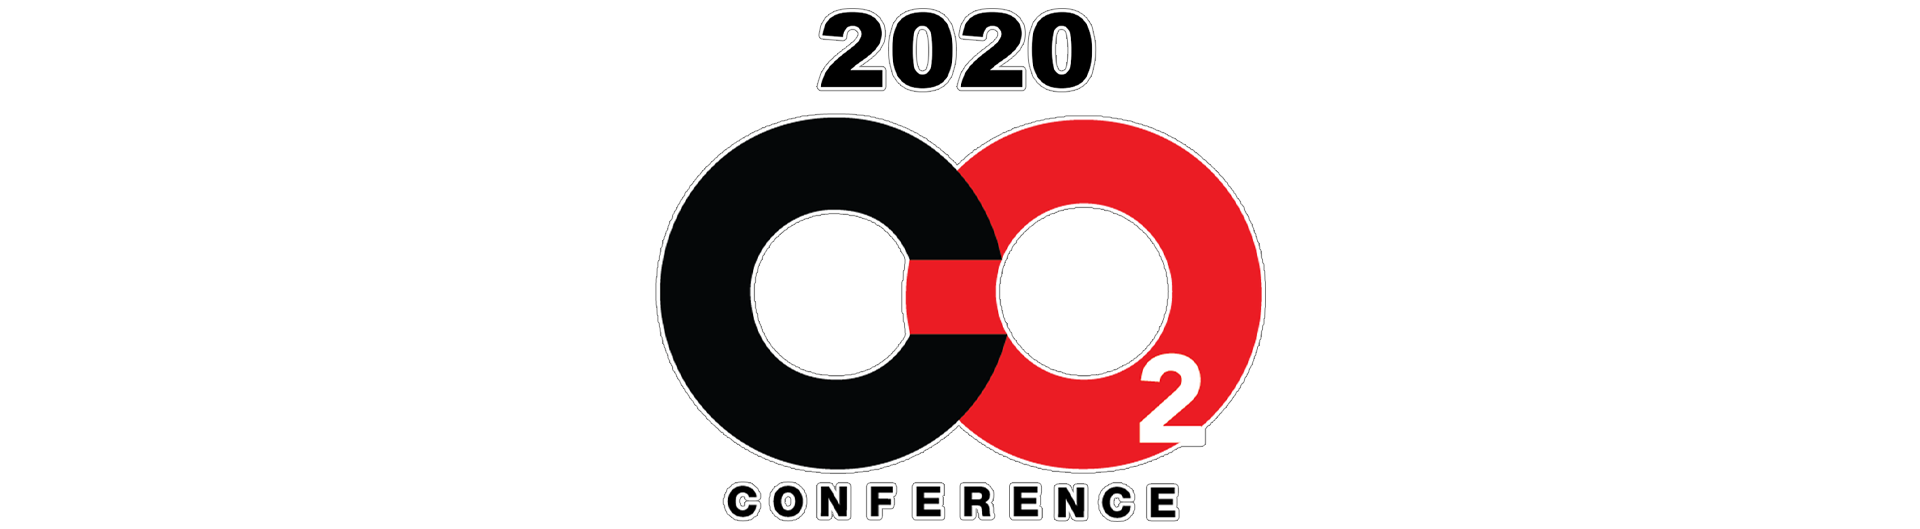 CO2 Conference Logo